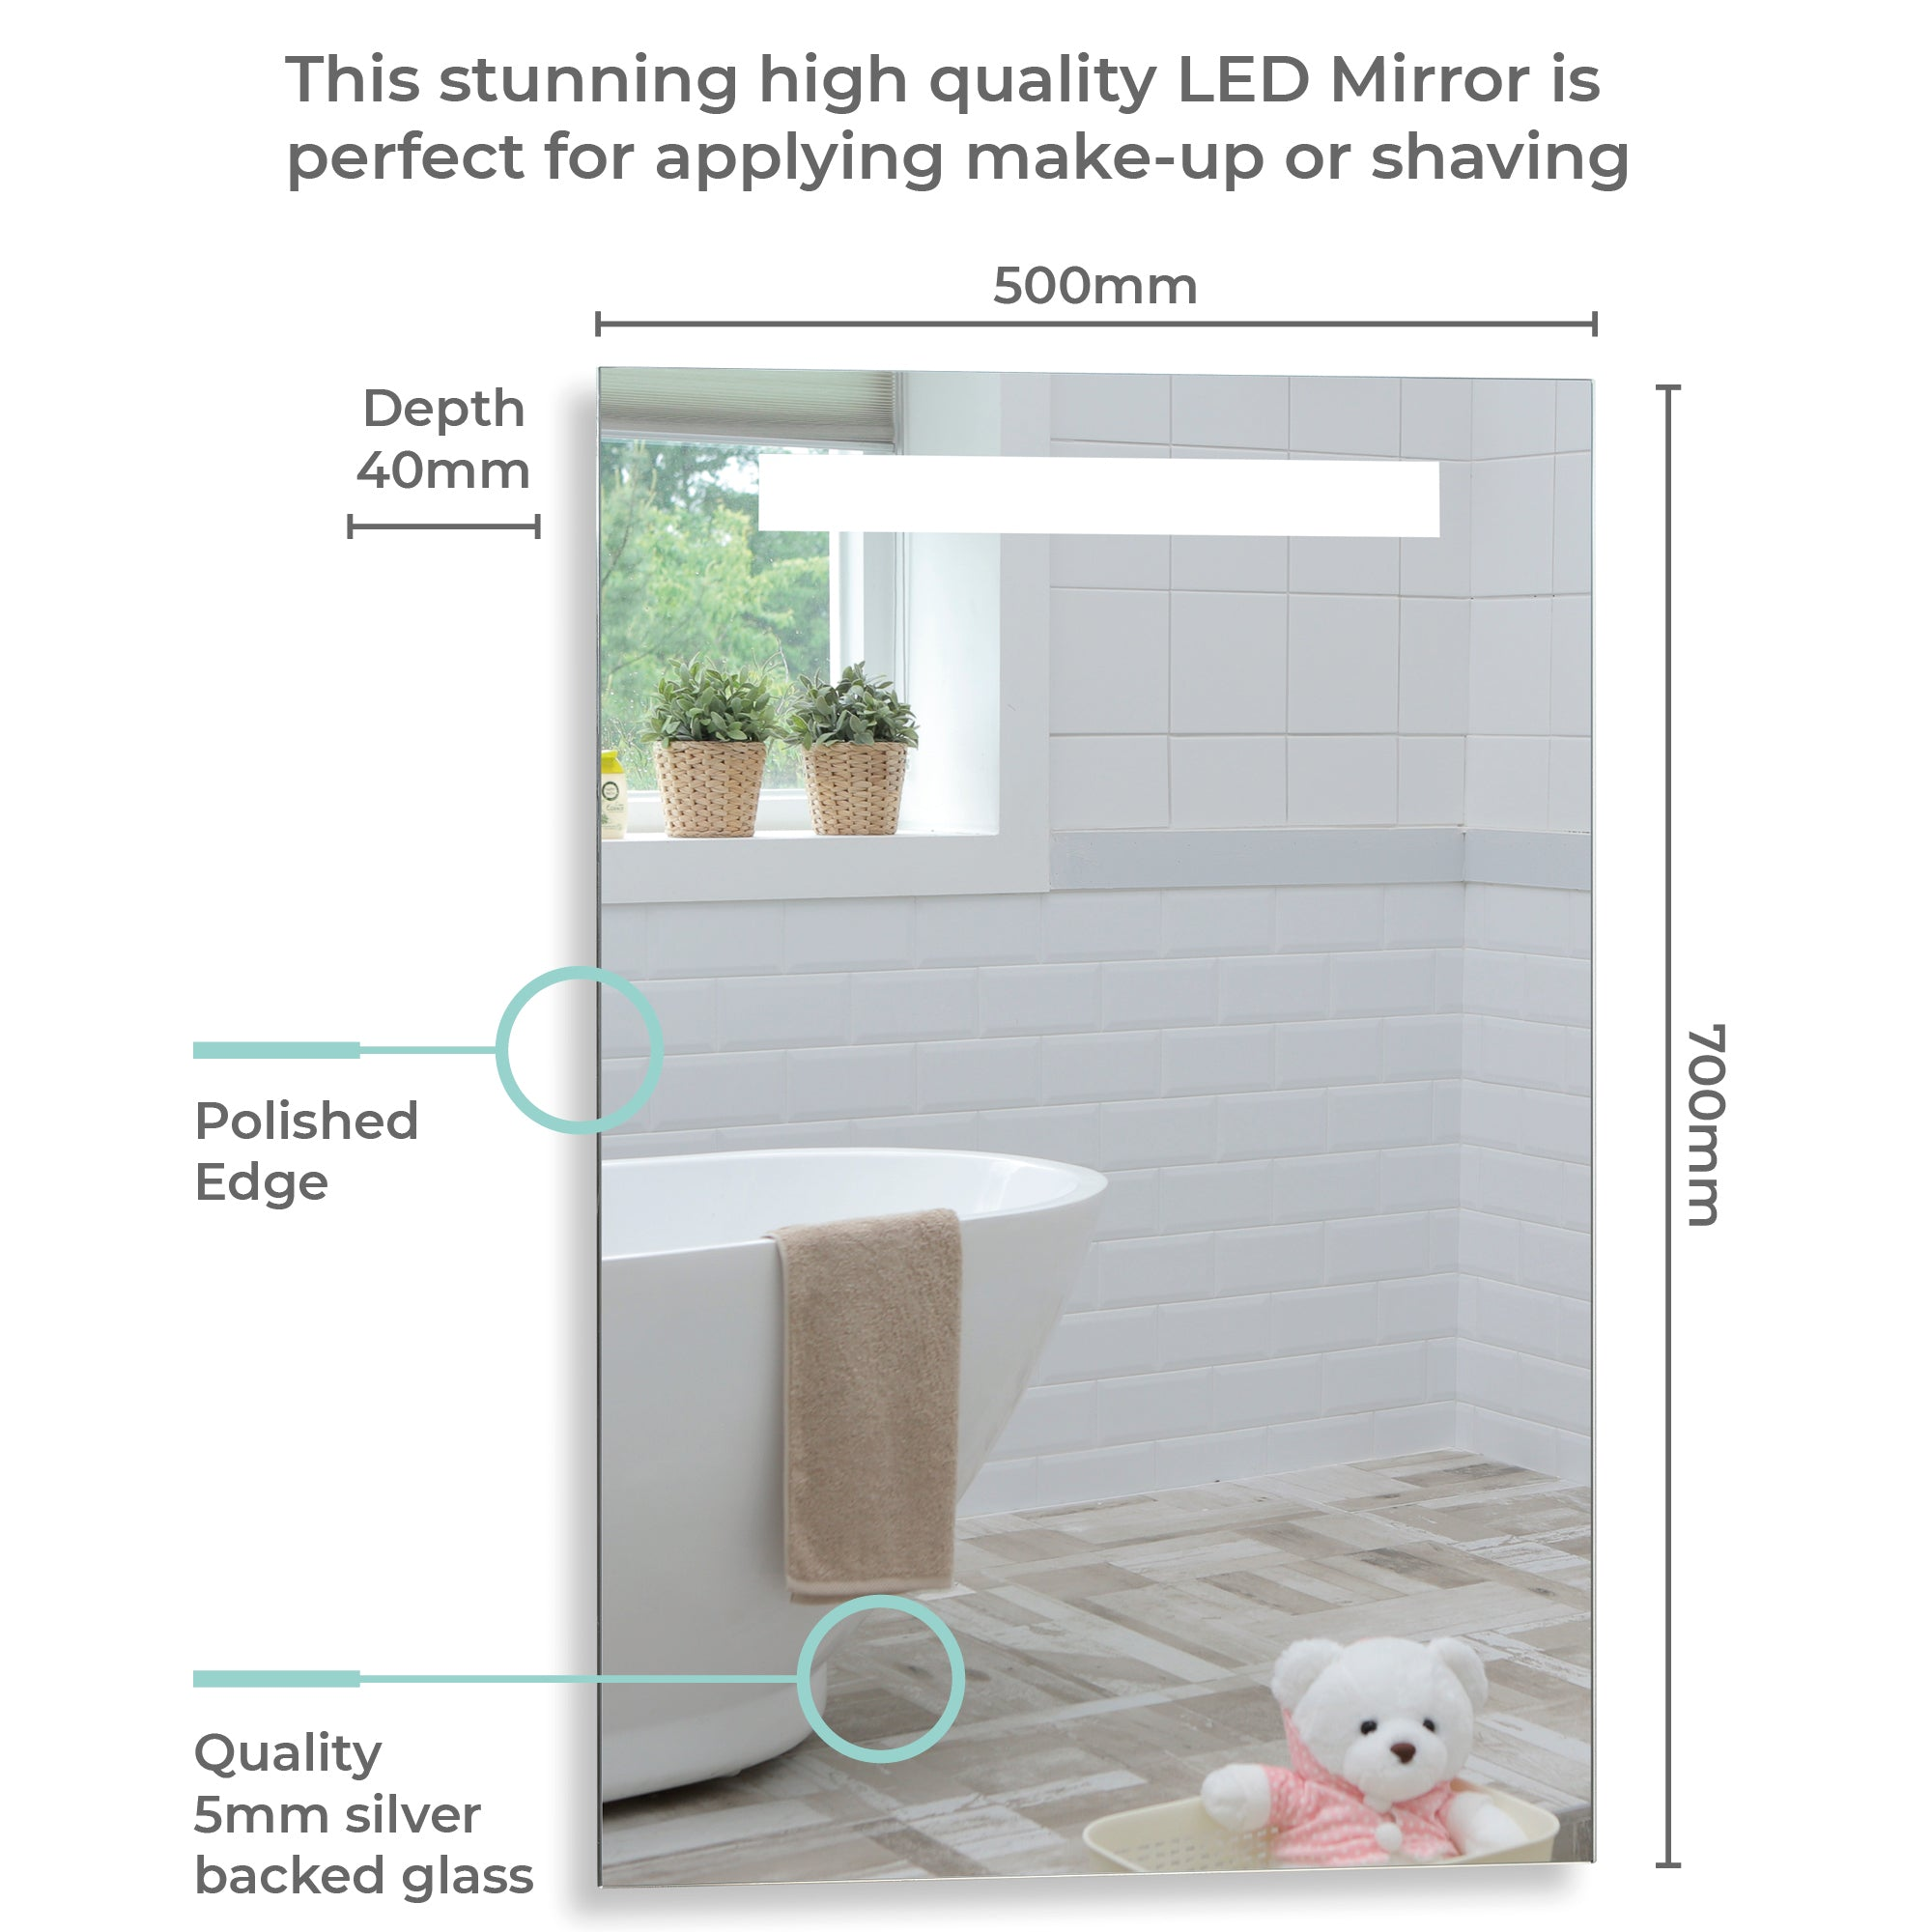 LED Illuminated Bathroom Mirror With Lights YJ541 Size-70HX50Wcm